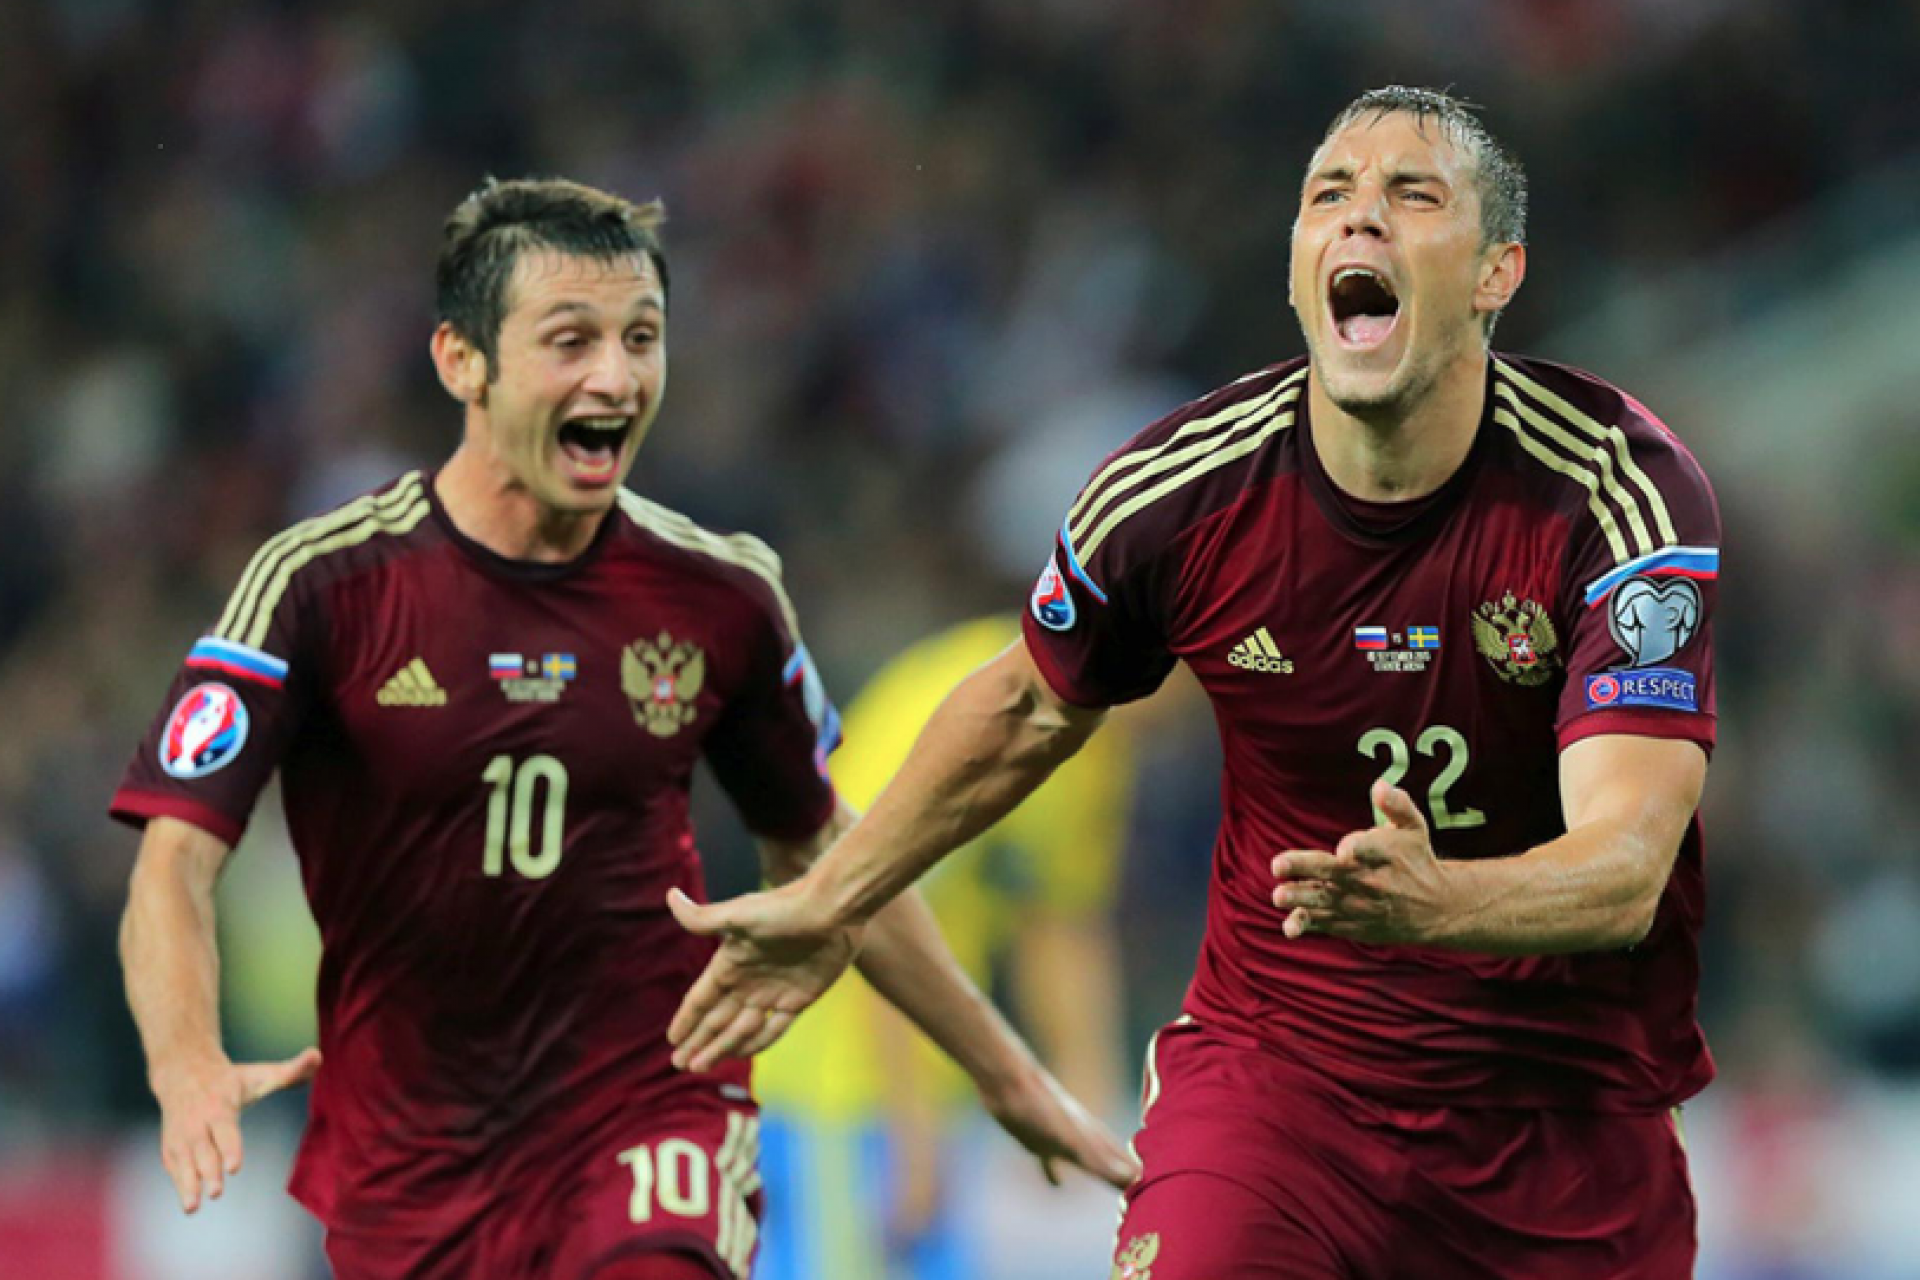 The Russian national team won a historic victory over the Egyptian national team in St. Petersburg 3 - 1